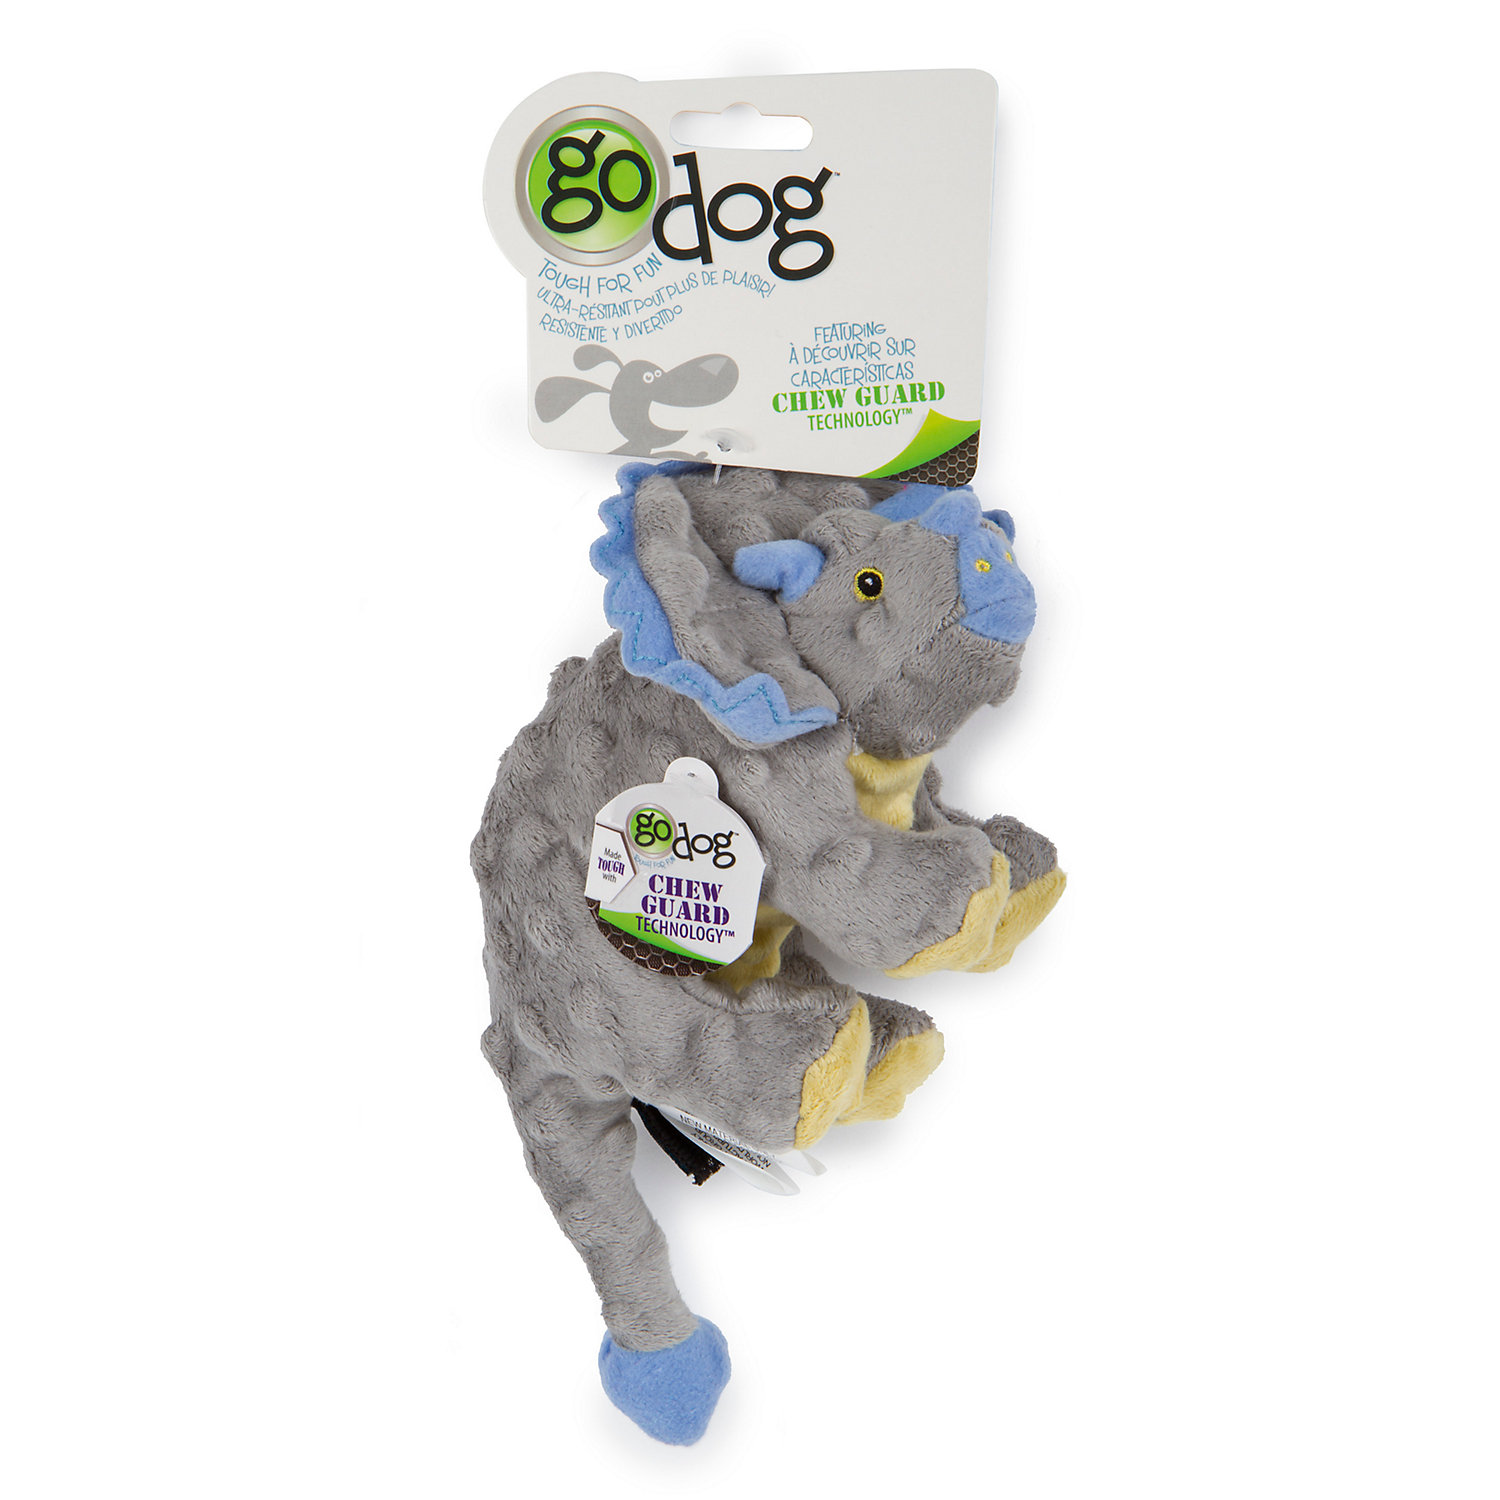 Image of Godog Dinos Frills Gray Small W/ Chew Guard Grey, Small, Grey / Blue